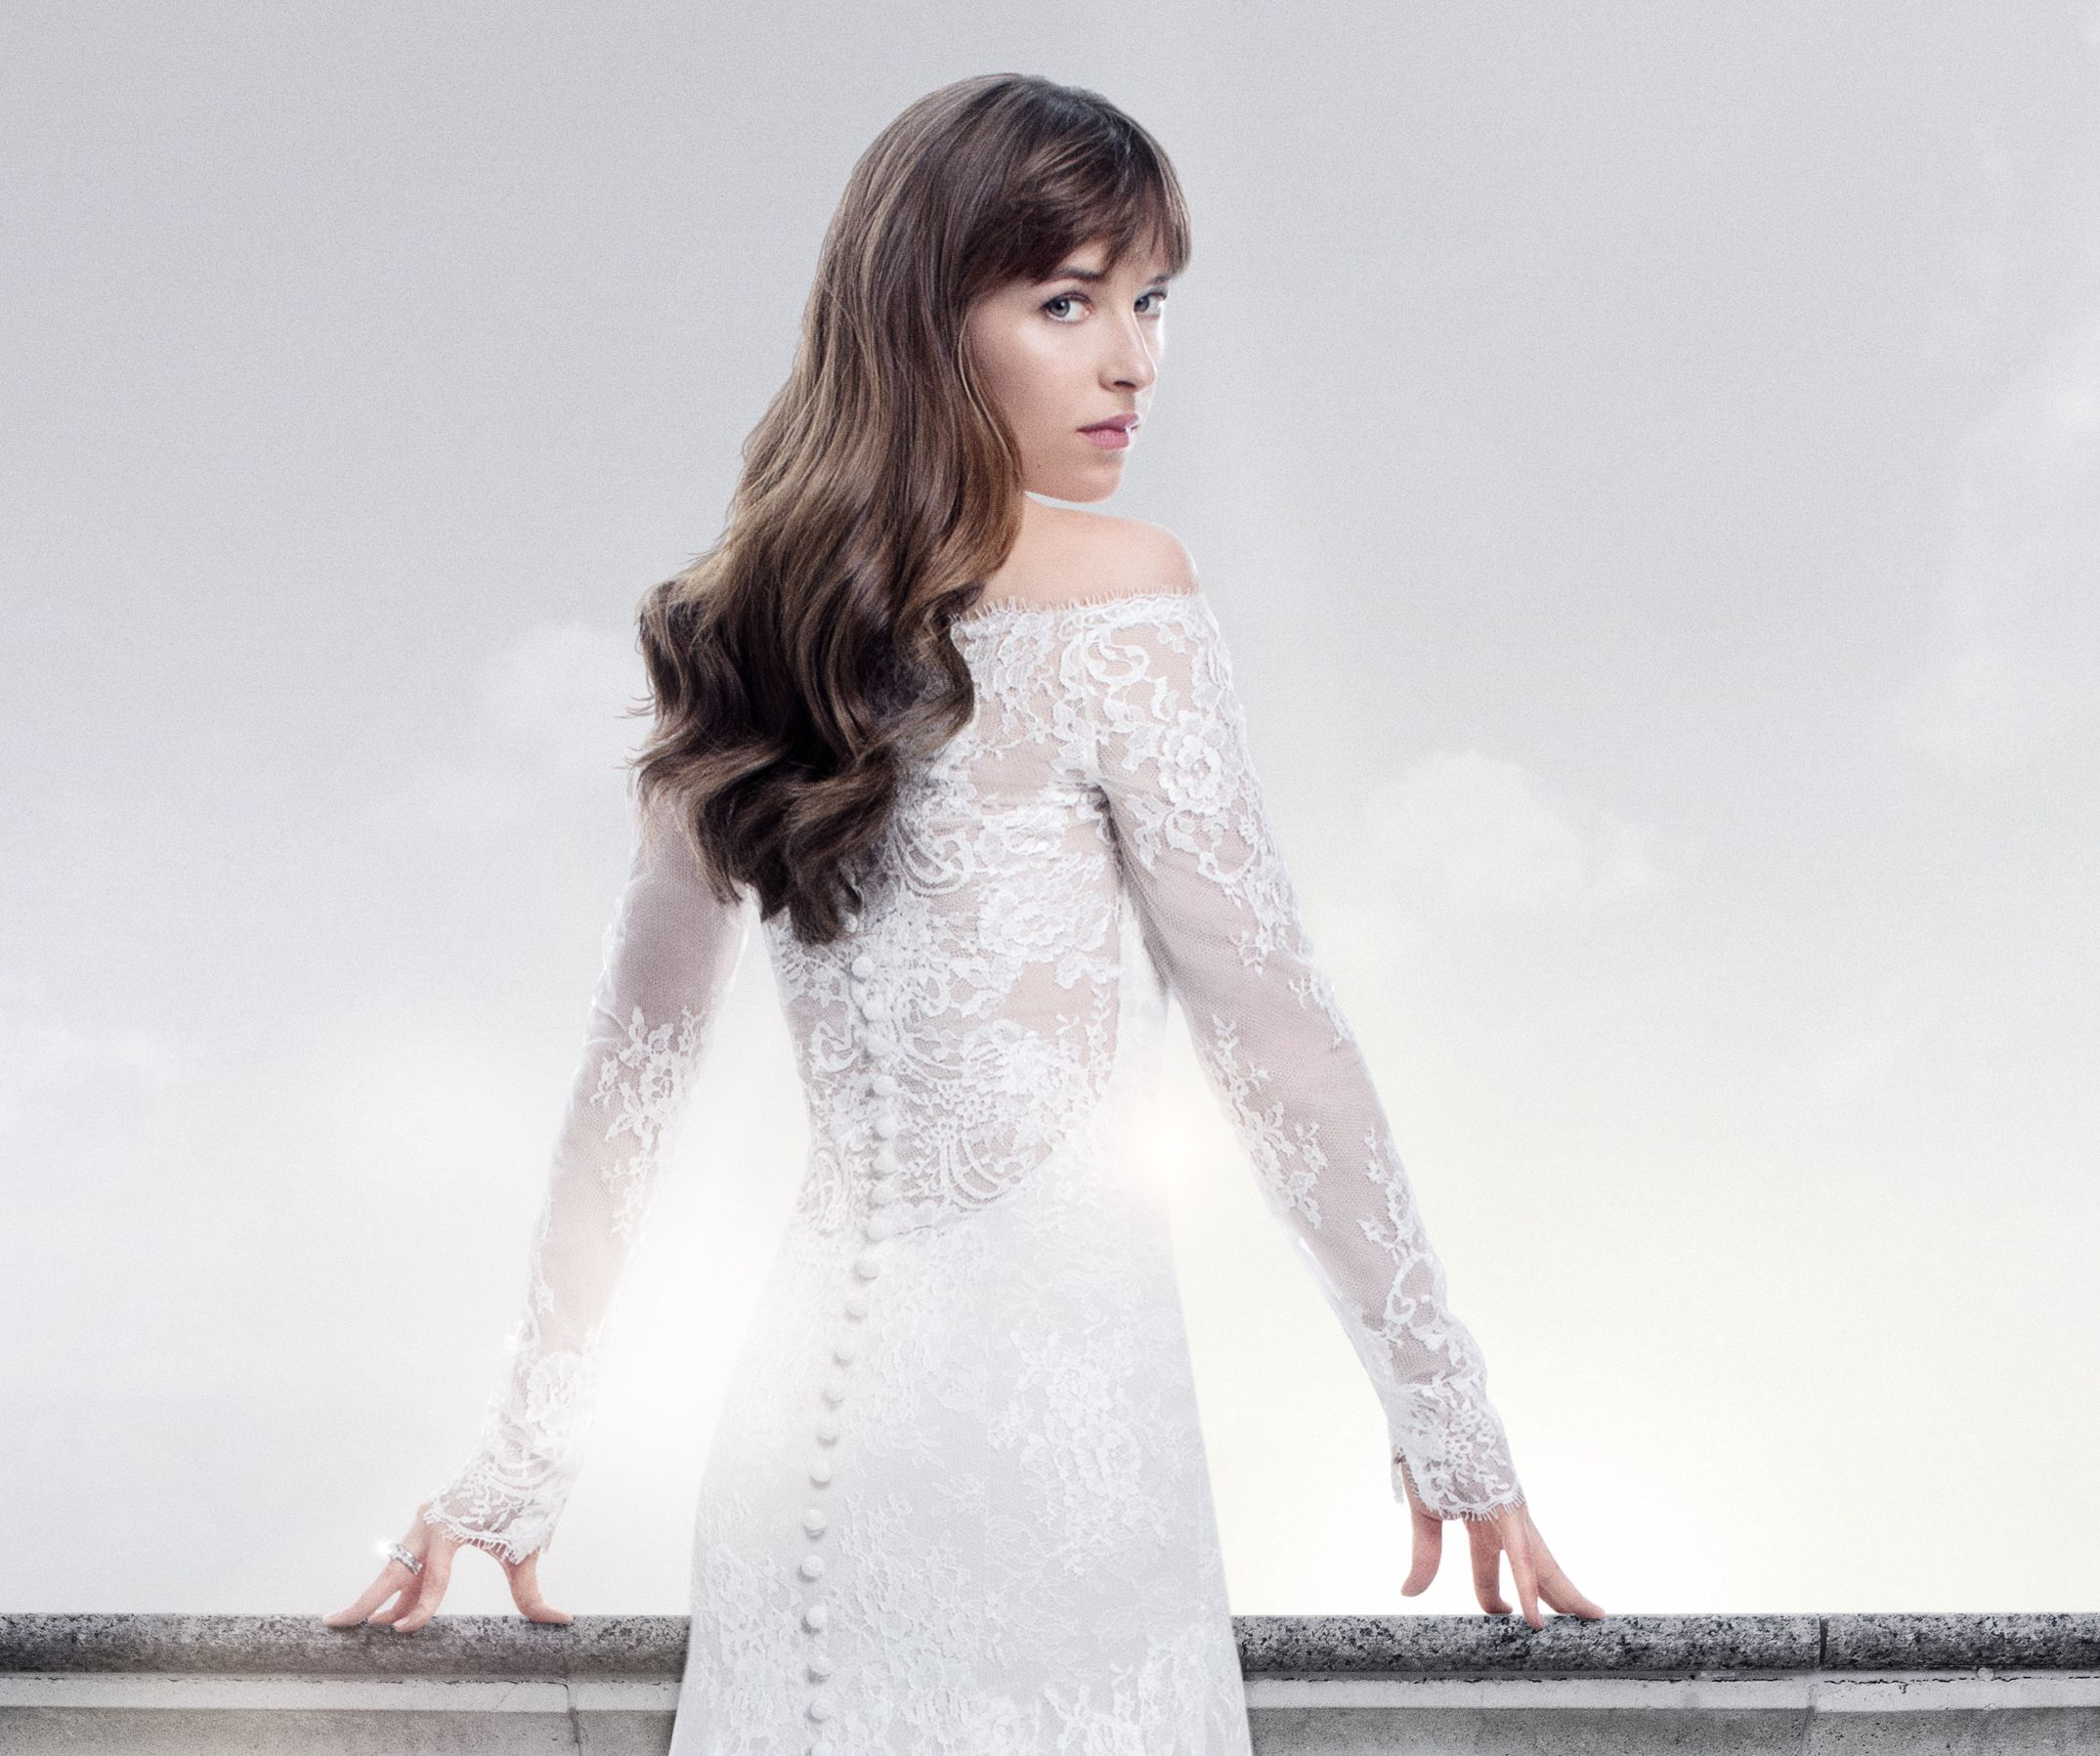 'Fifty Shades Freed' Teaser Invites You to the Wedding of